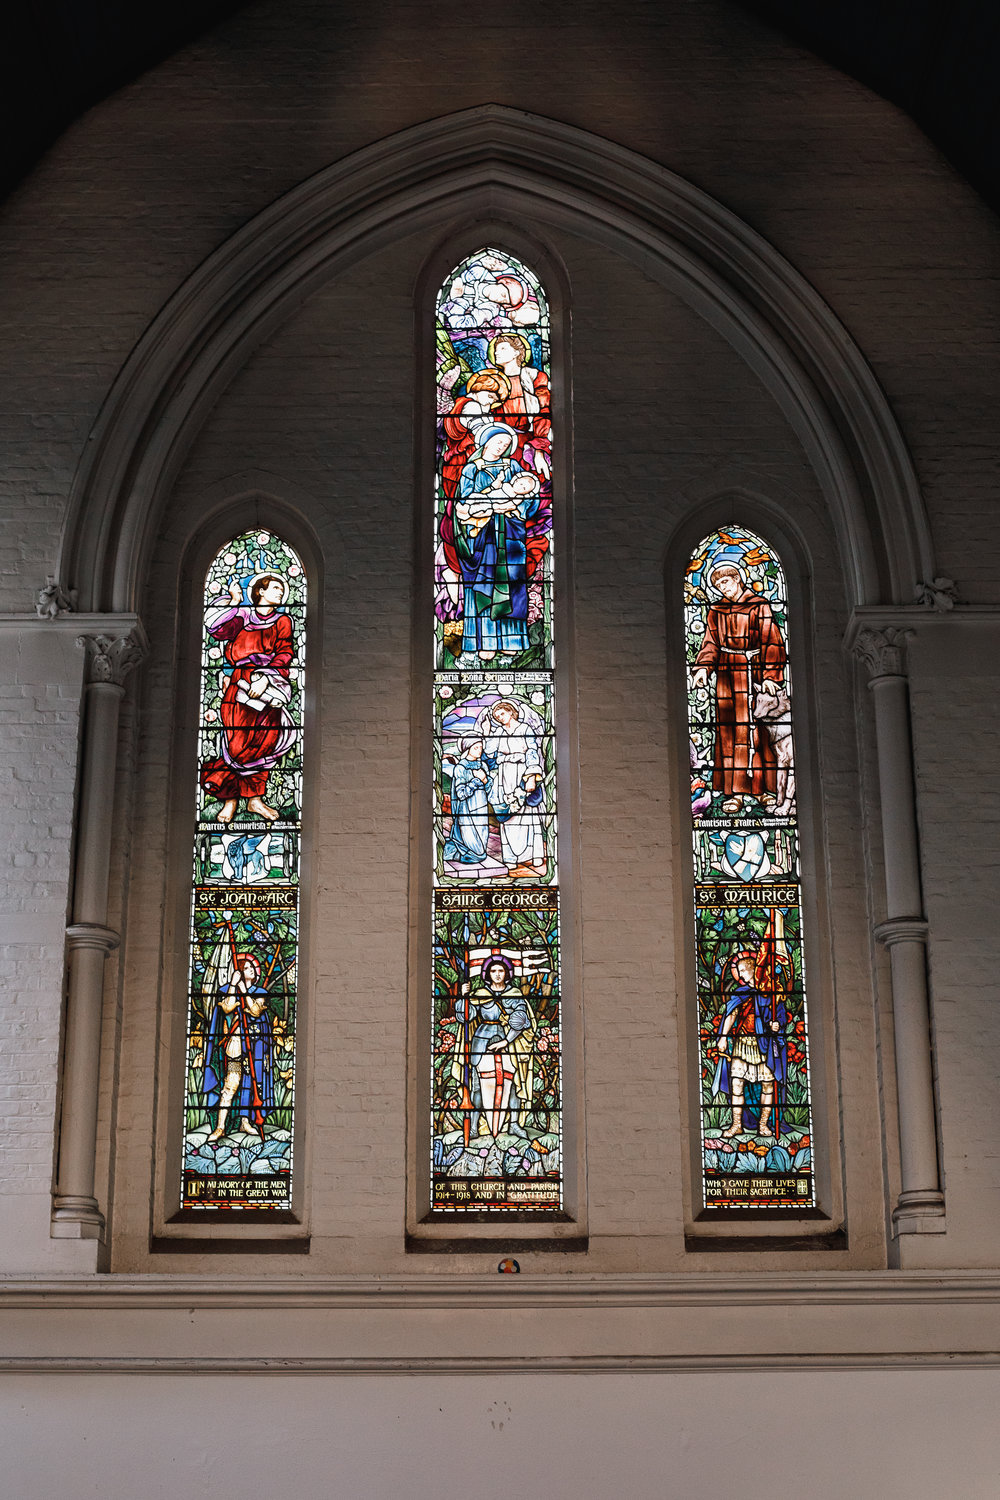 Stained glass window in St Mark's Church on the Old Marylebone Road.